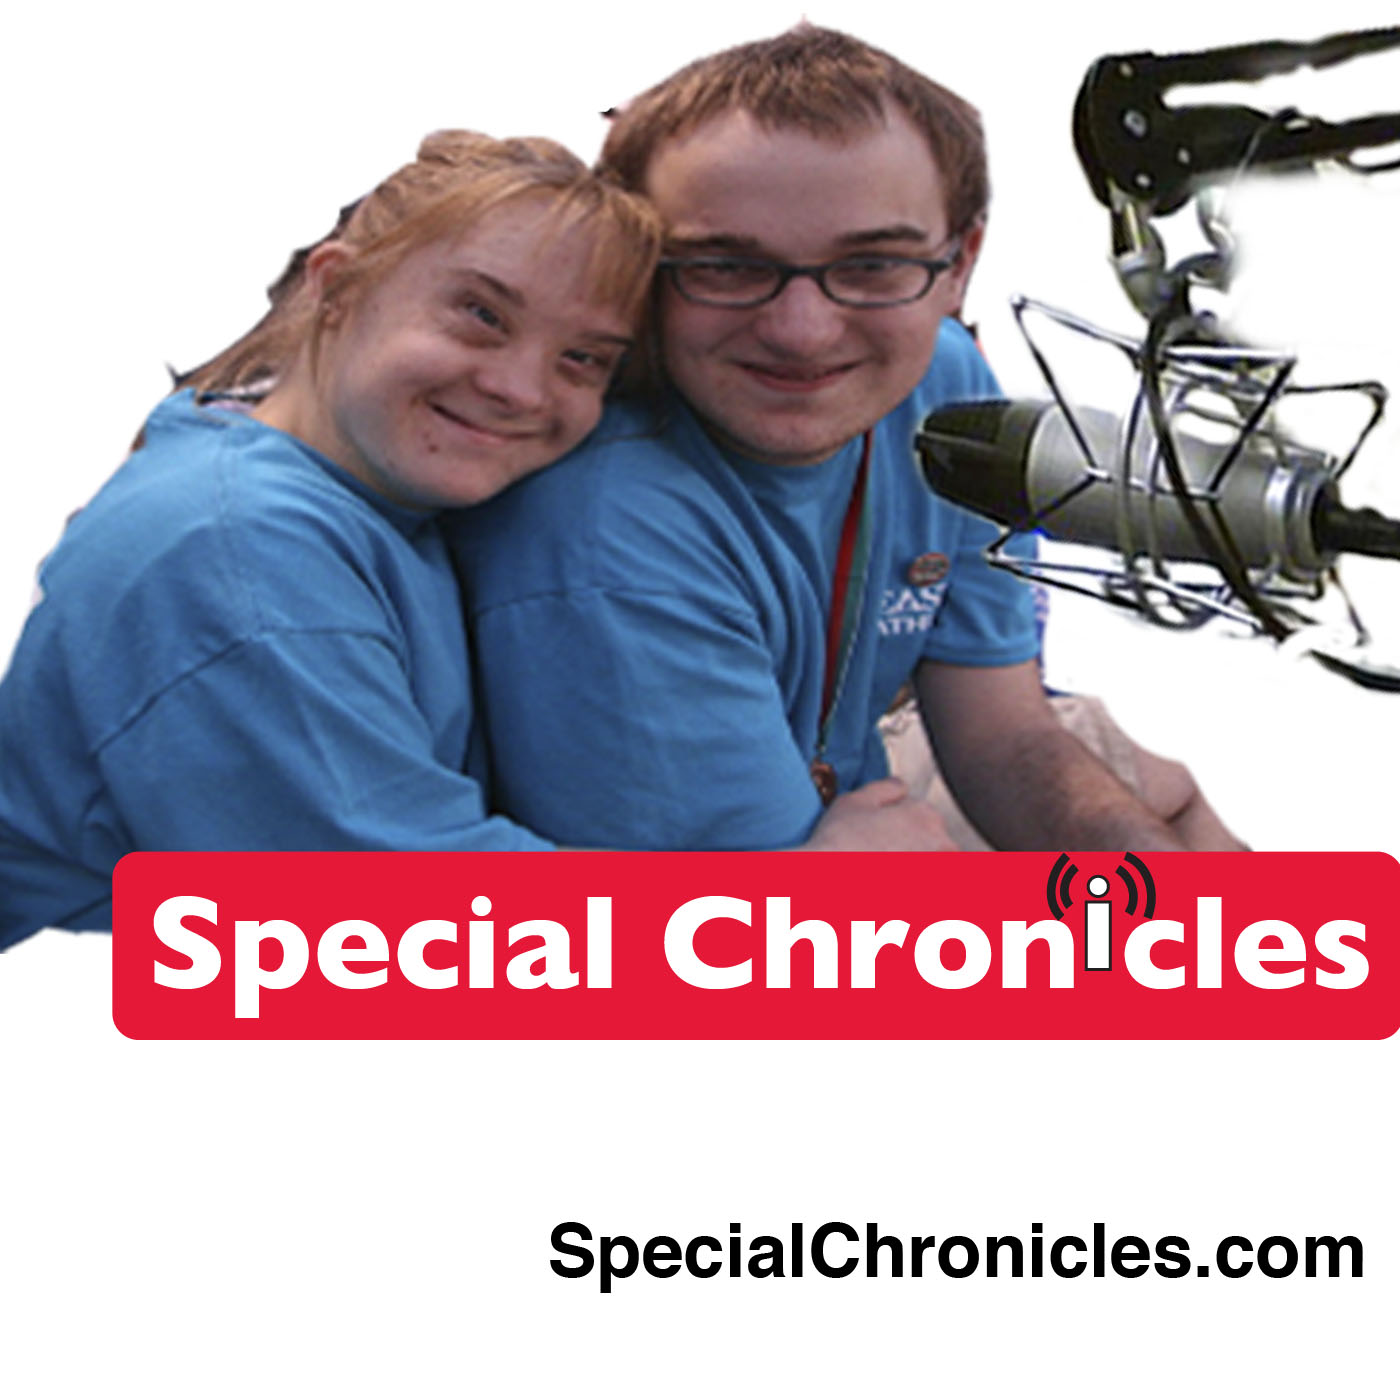 Special Chronicles